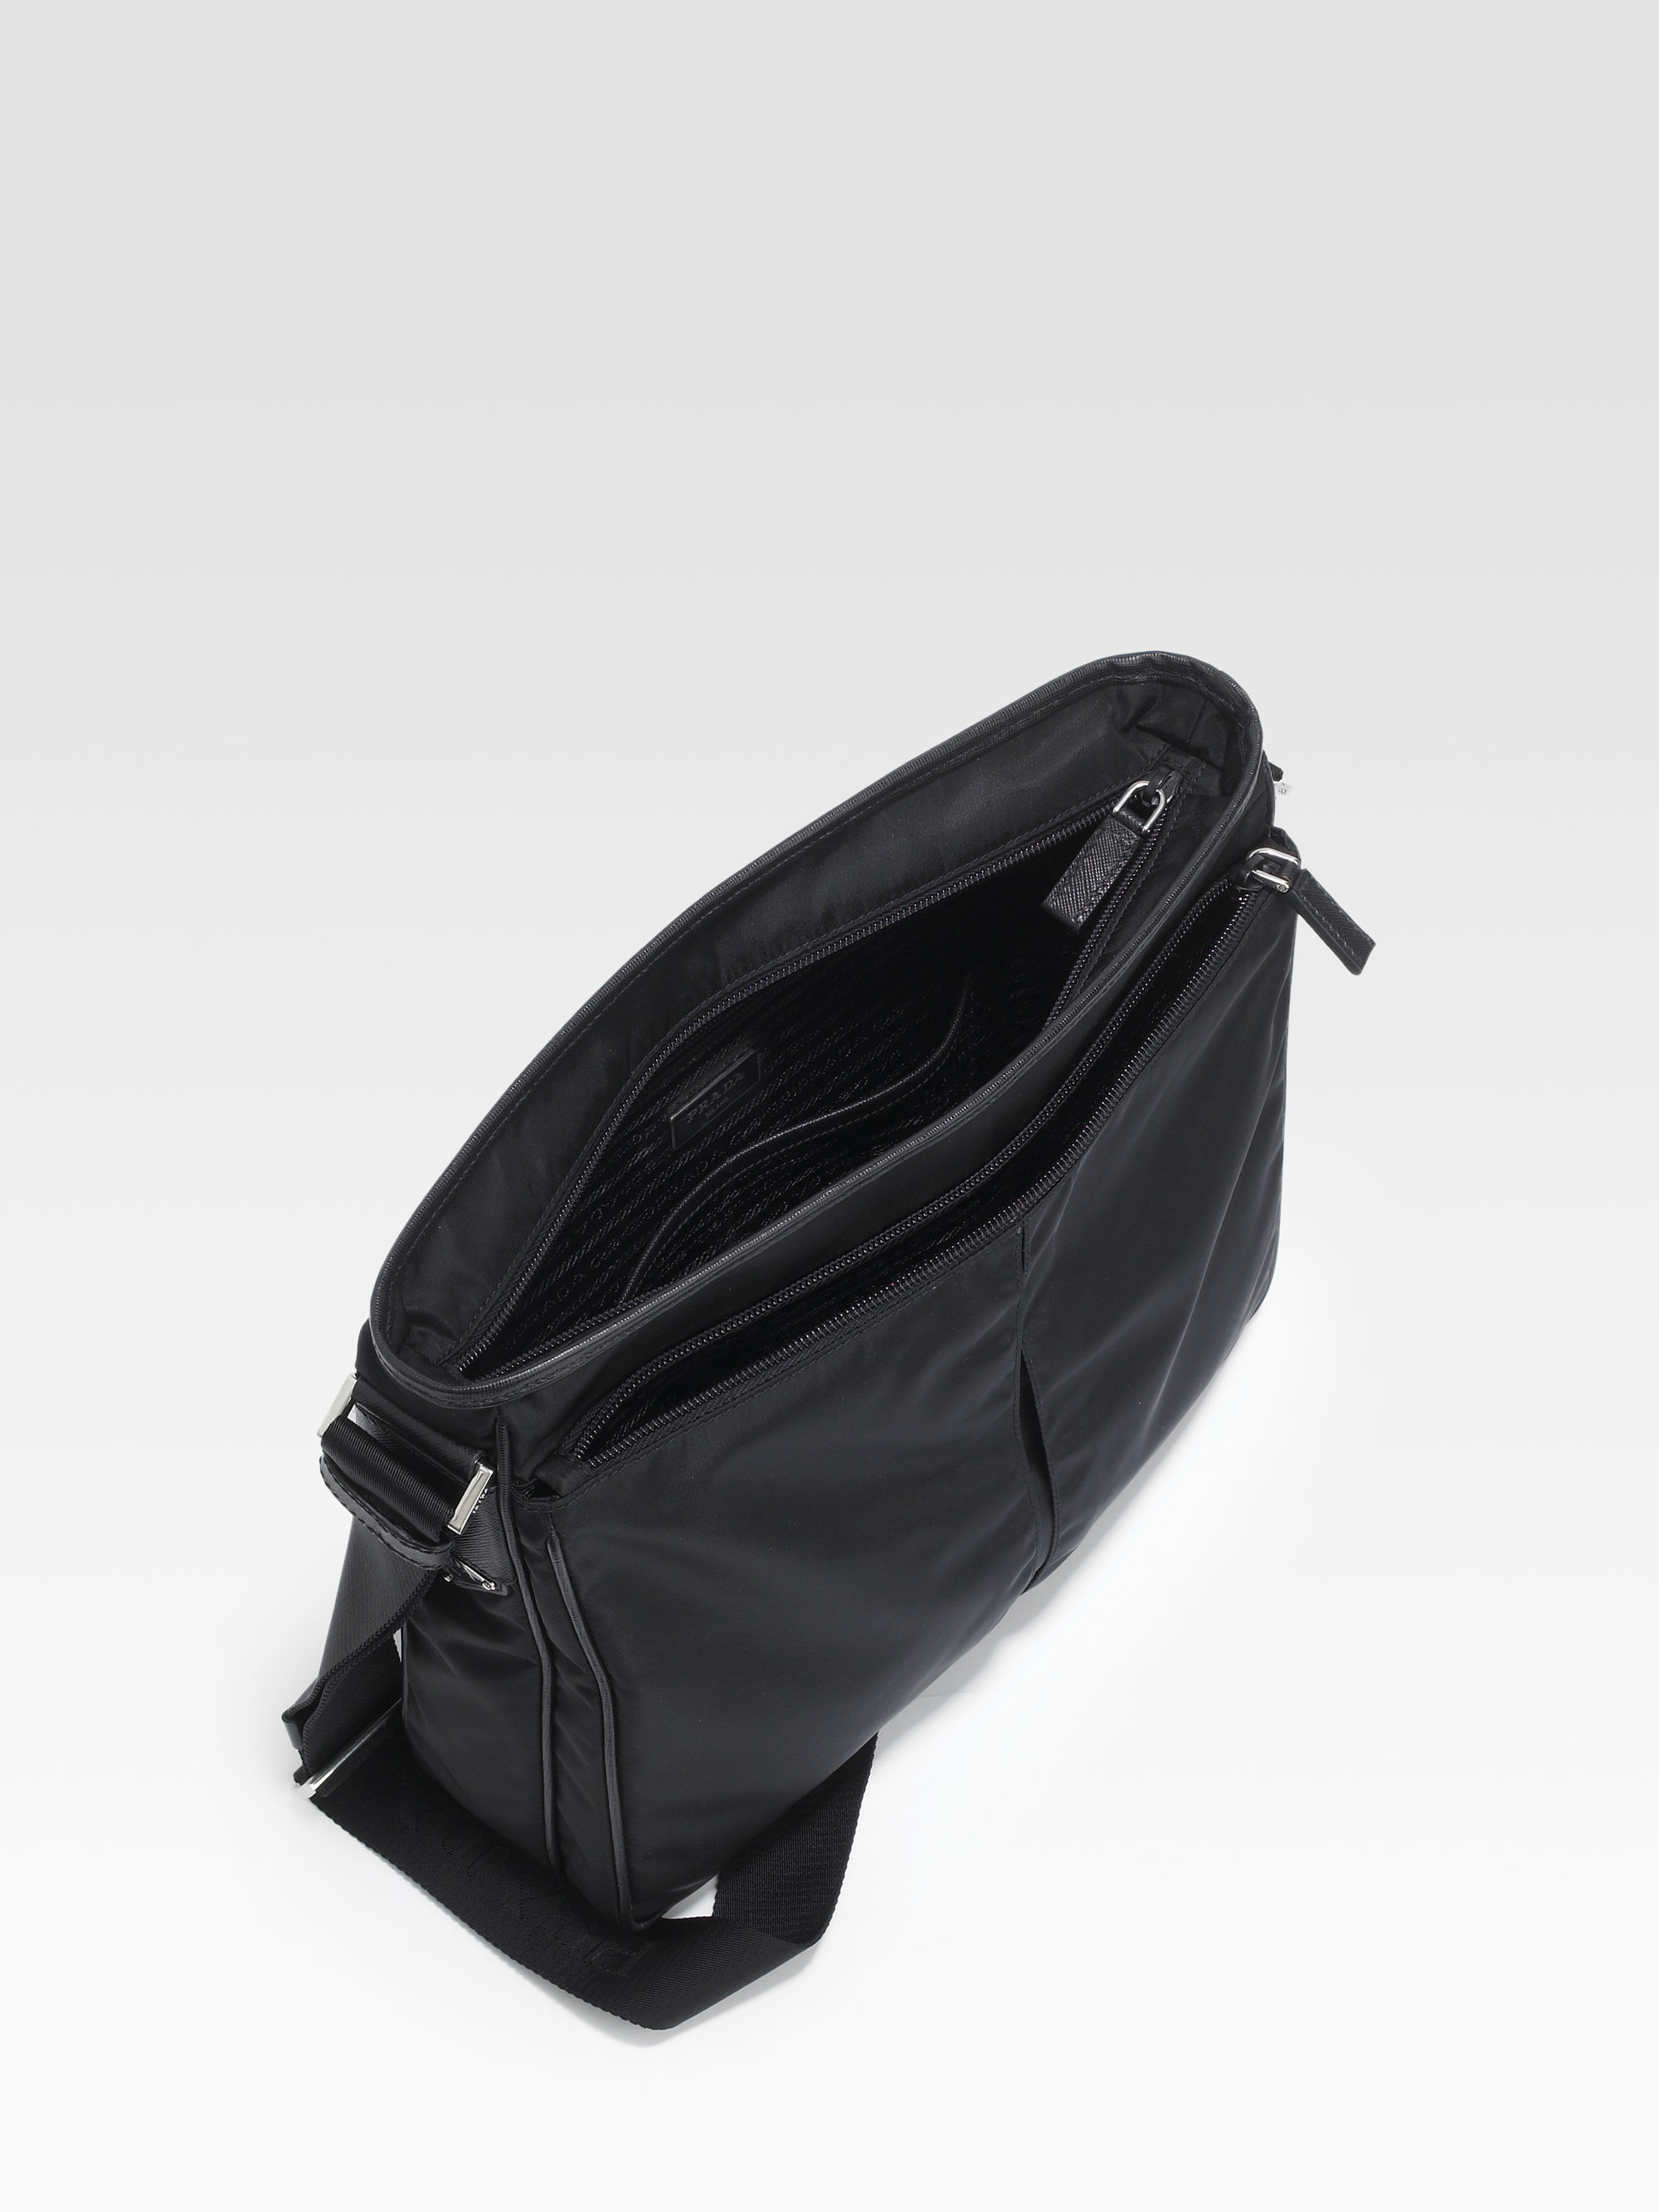 c0b09fb0465f ... discount lyst prada nylon large crossbody bag in black for men ec44e  5899b